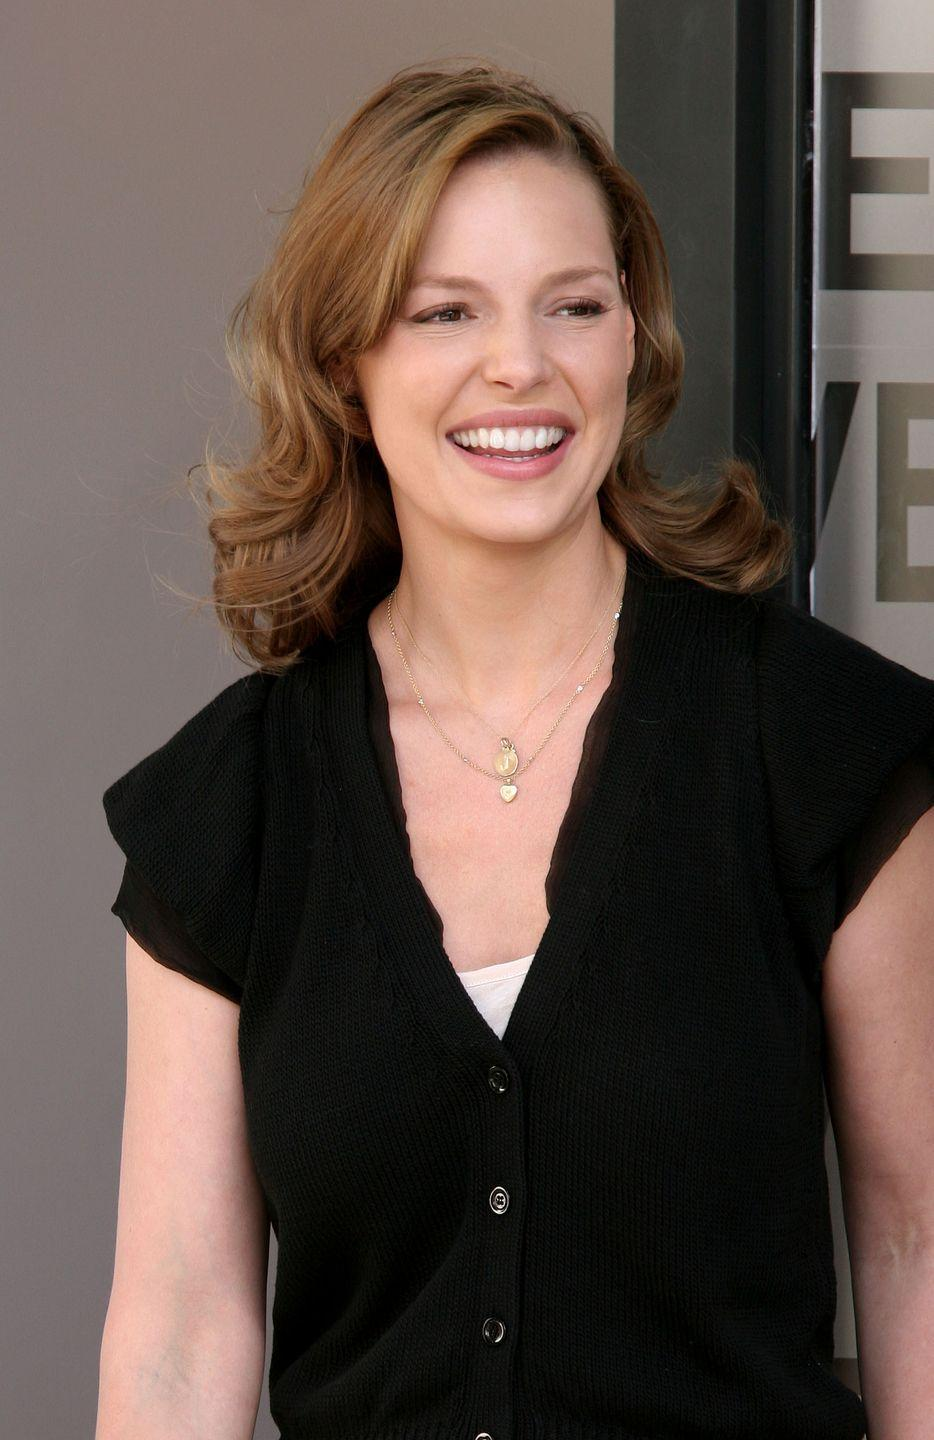 """<p>While she was filming the iconic wedding film <em>27 Dresses</em>, Katherine Heigl was also planning her real-life wedding. That included straightening out two teeth that stuck out. </p><p>She opted for Invisalign, which caused some difficulties on set. """"All my life, I've had two teeth that stuck out, and I'd been fine with it in my film career. But, for my wedding, I wasn't OK with it,"""" <a href=""""https://www.peoplemagazine.co.za/celebrity-news/international-celebrities/katherine-heigl-opens-up-about-27-dresses-dental-drama/"""" rel=""""nofollow noopener"""" target=""""_blank"""" data-ylk=""""slk:she said at the time"""" class=""""link rapid-noclick-resp"""">she said at the time</a>. """"So I got Invisalign (braces) and I remember when we were filming, I was always having to take them out to do my dialogue or do a scene.""""</p>"""